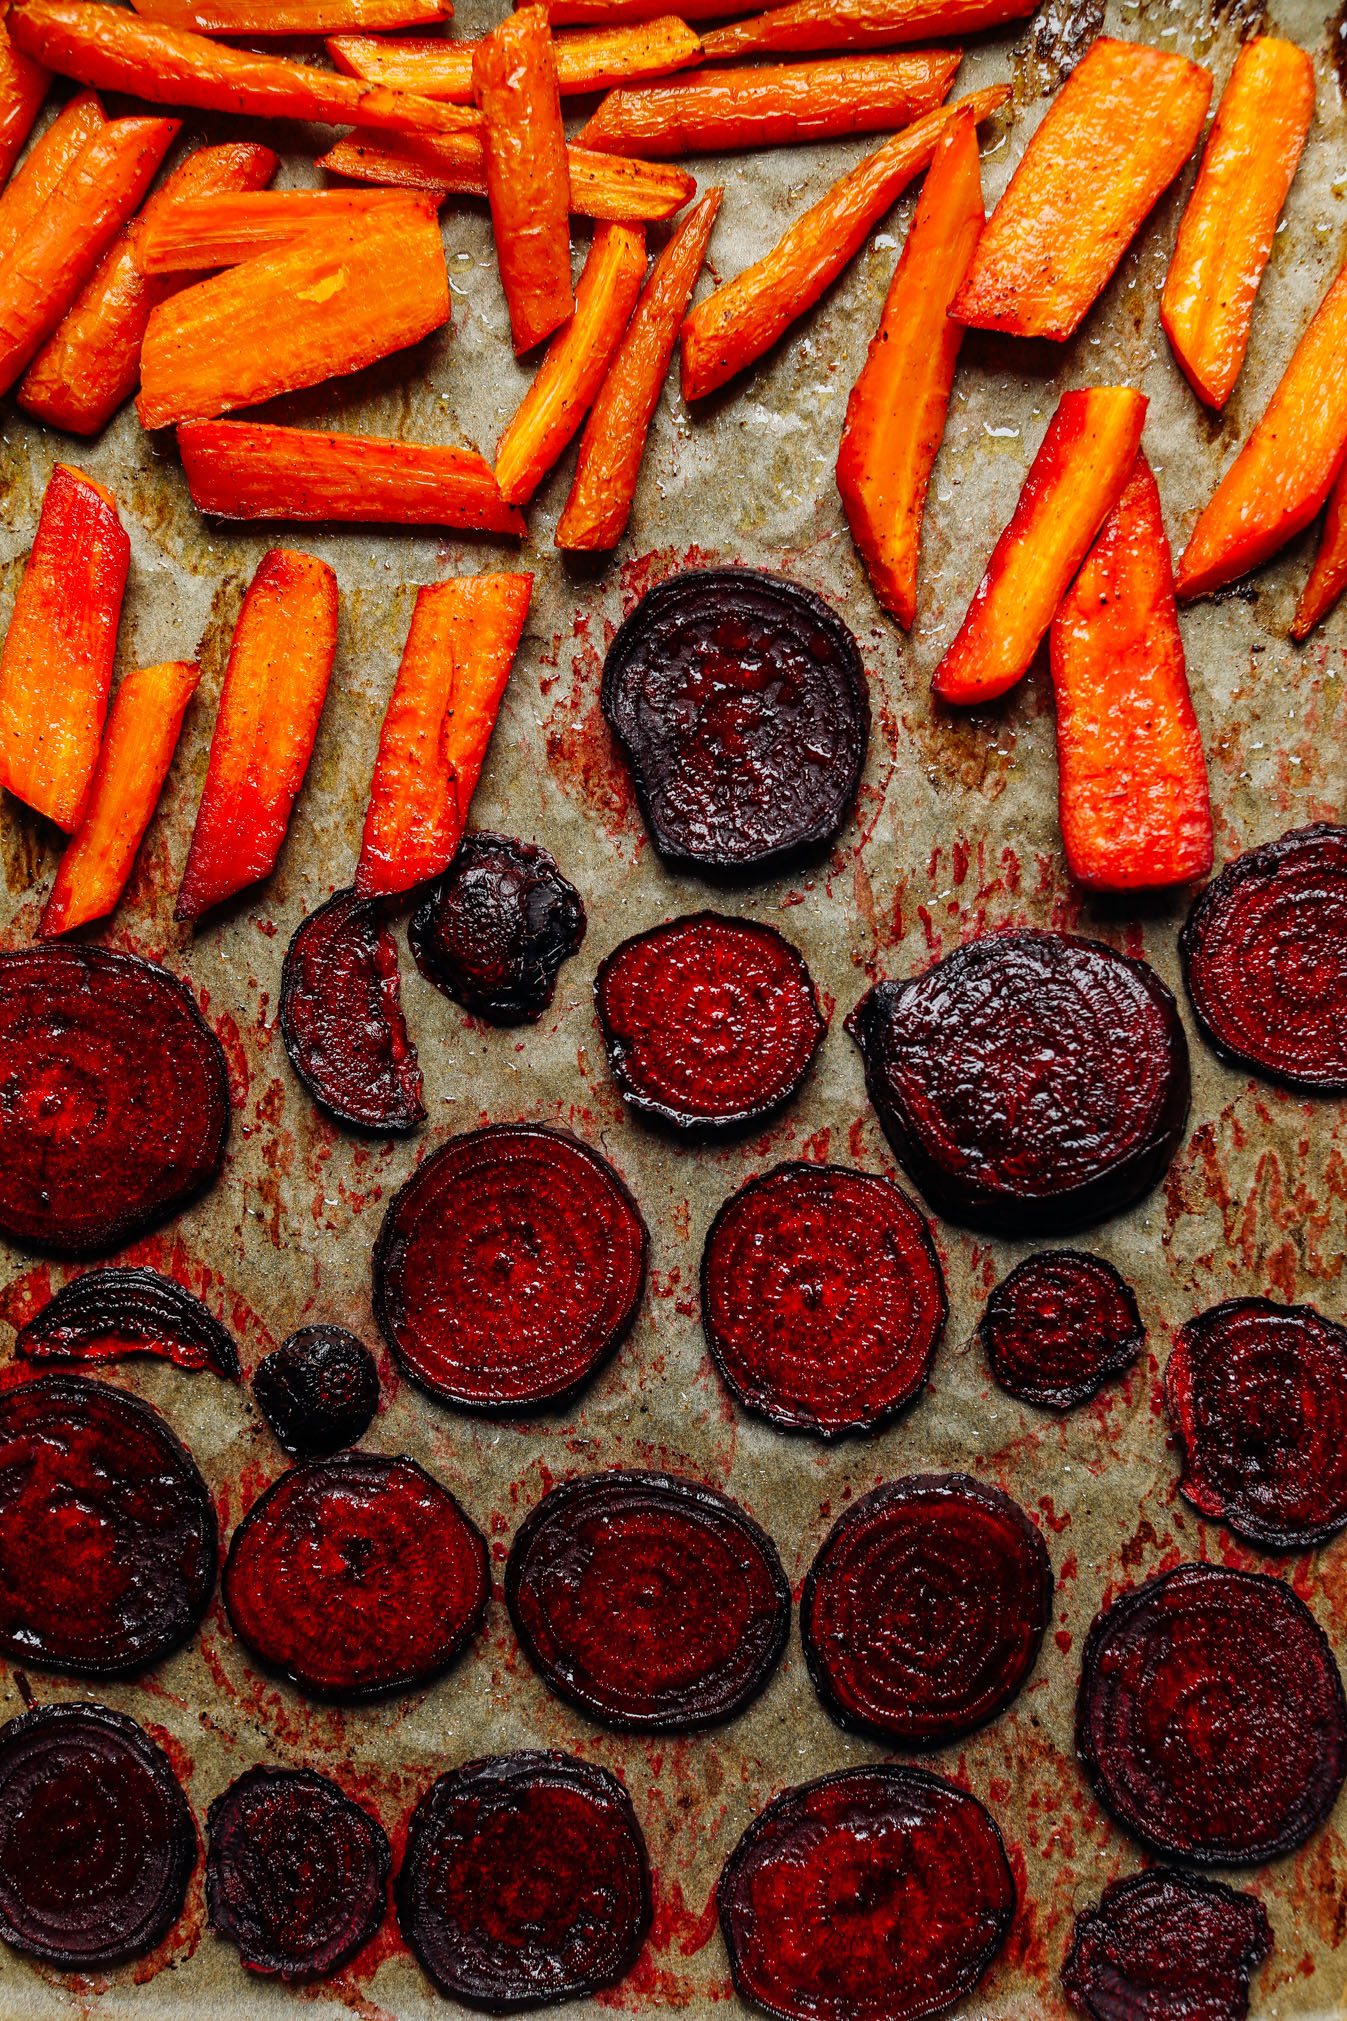 Baking sheet with freshly roasted carrots and beet slices for dipping in our Easy Vegan Crudite recipe